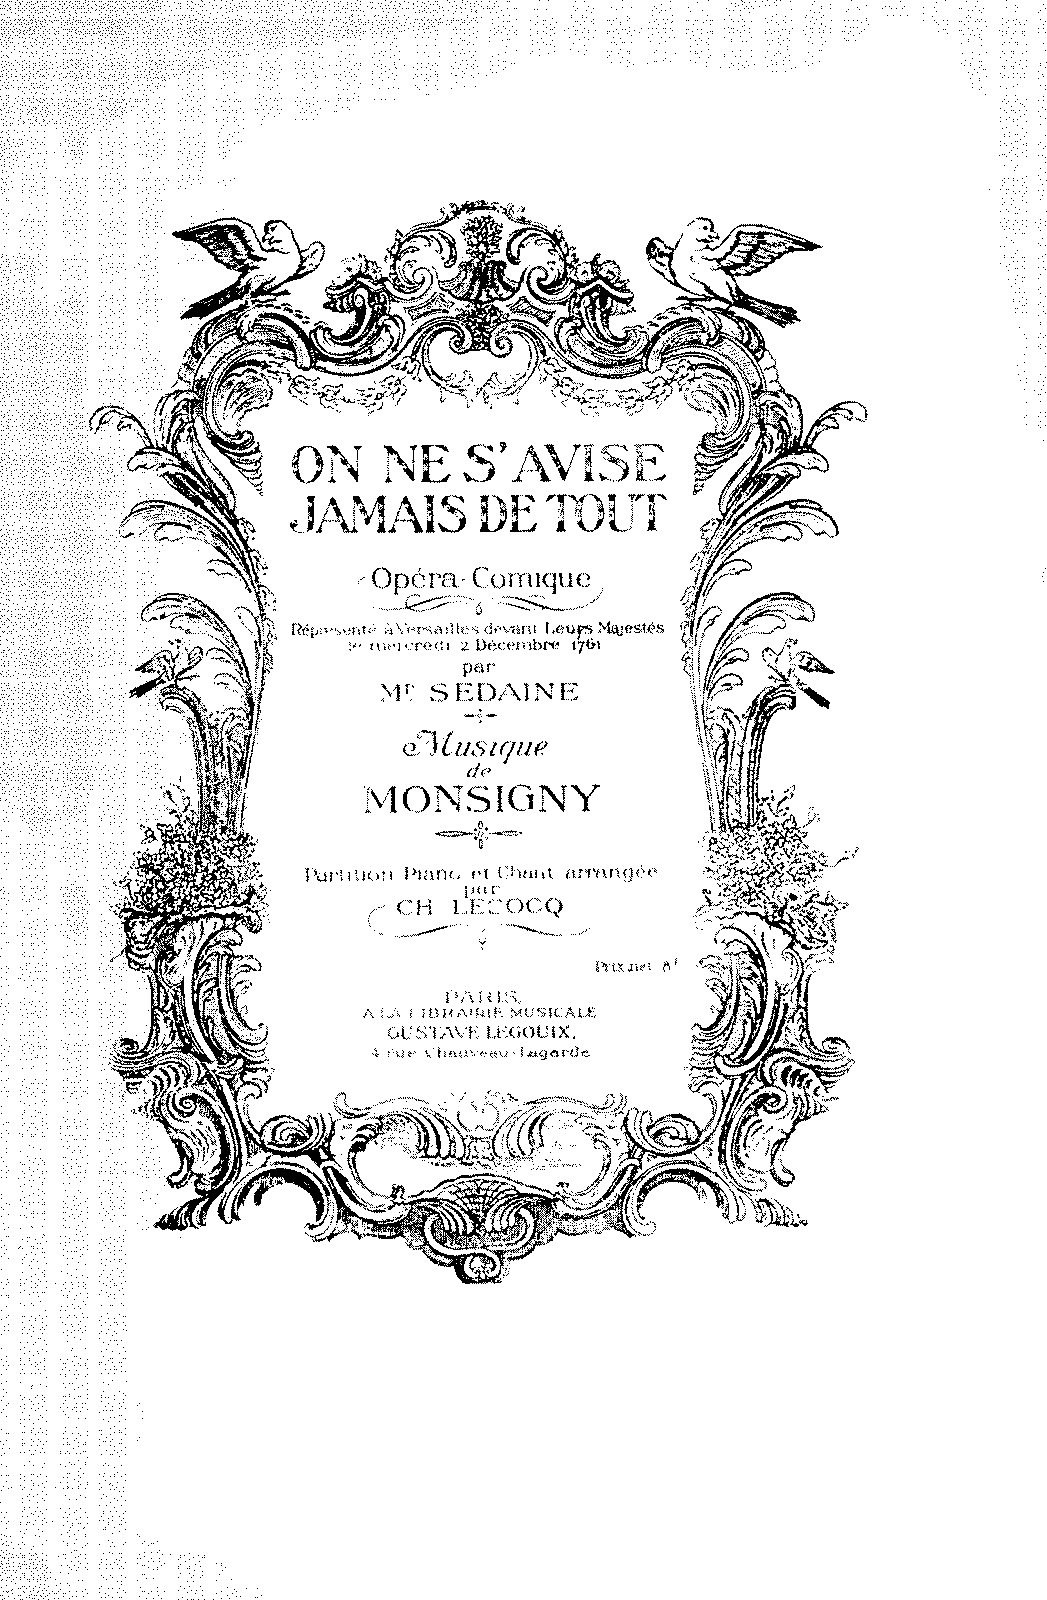 PMLP152934-Monsigny - On ne savise VS.pdf